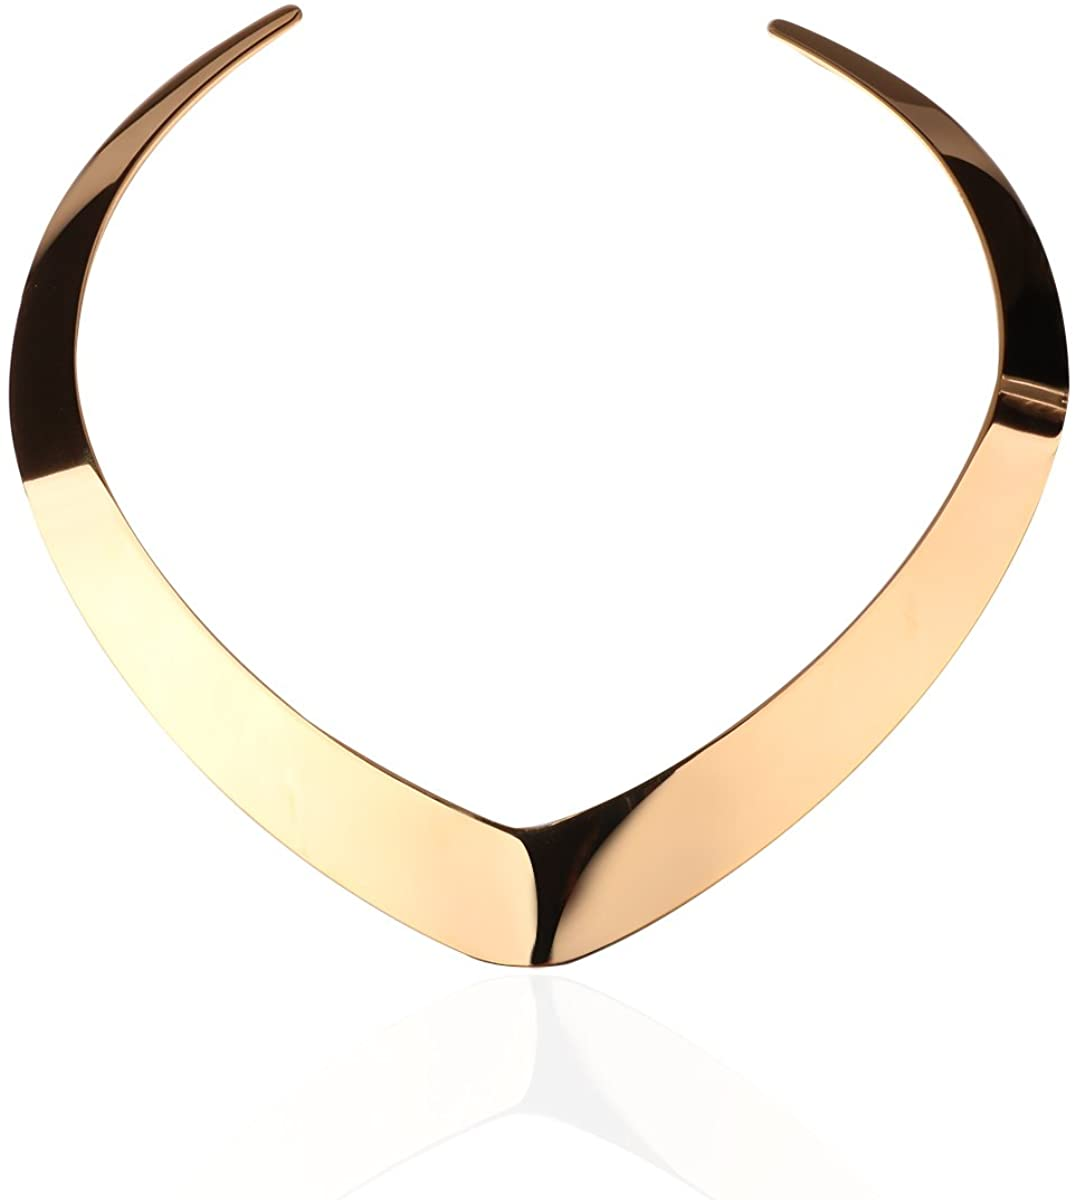 Carfeny Gold/Rose Gold/Silver Choker Necklaces for Women,Love Heart Shaped End Open Adjustable Statement Jewelry for Women